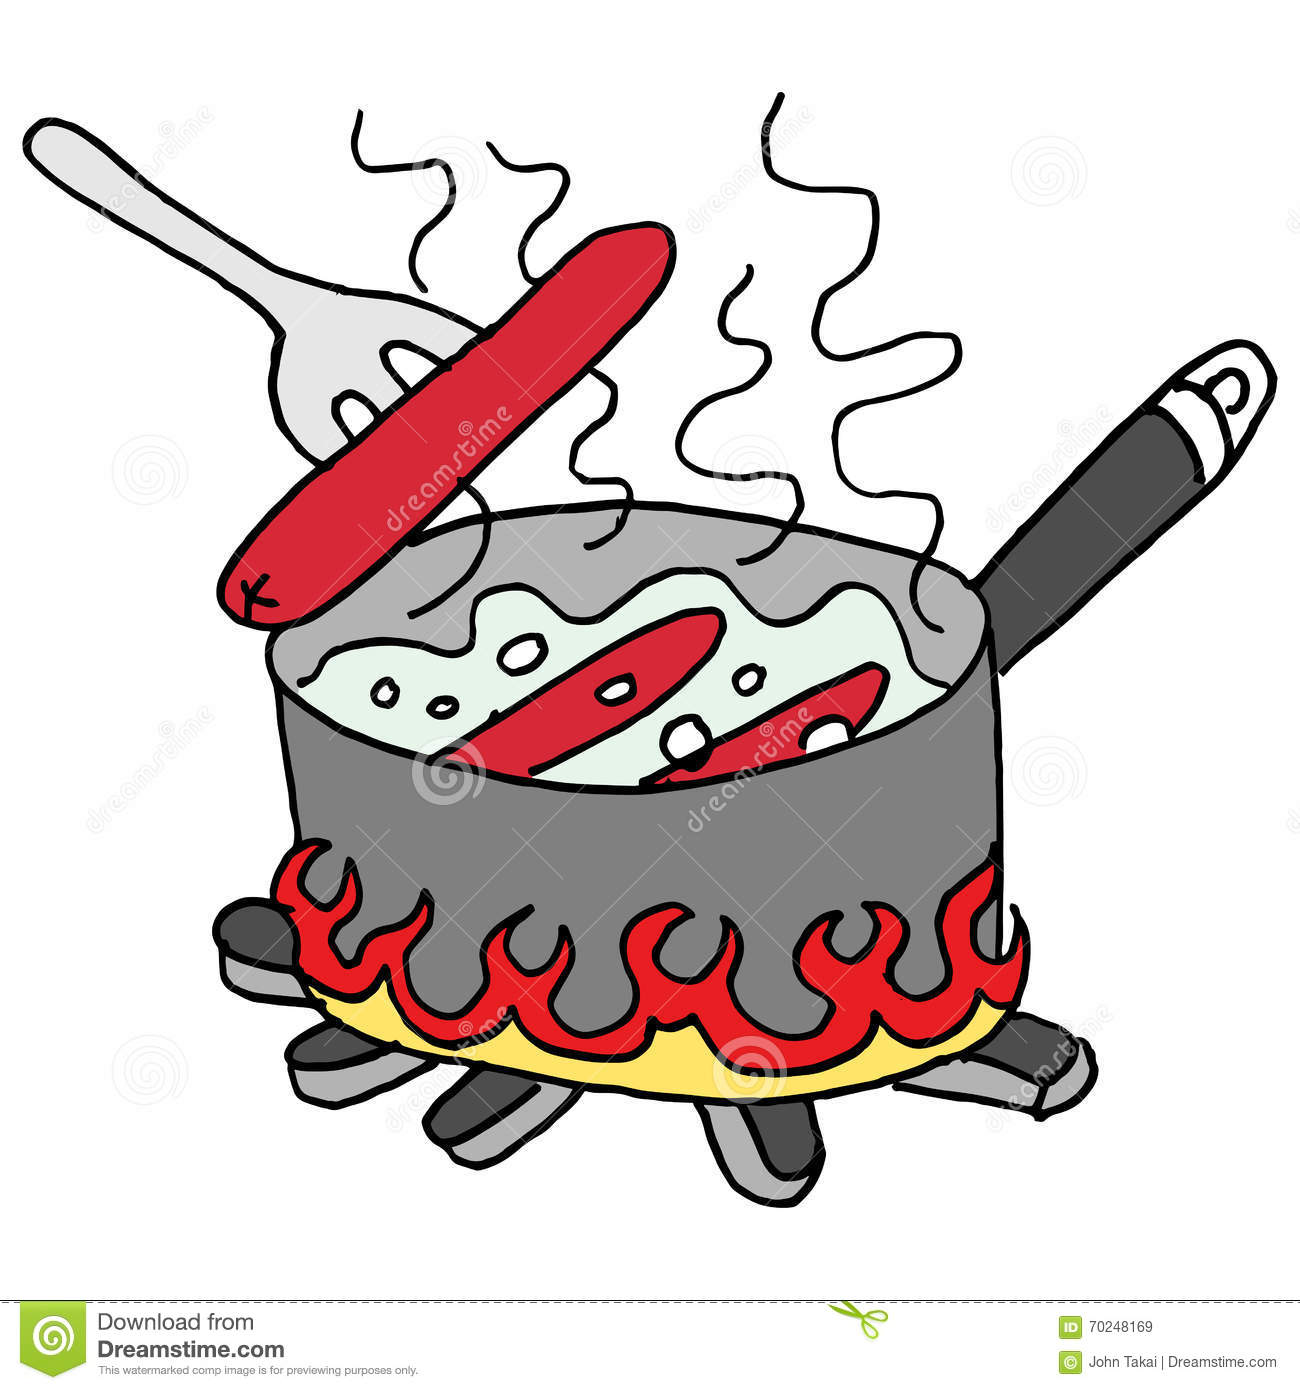 Hot Dogs Boiling In A Pot Of Water Stock Vector - Image: 70248169